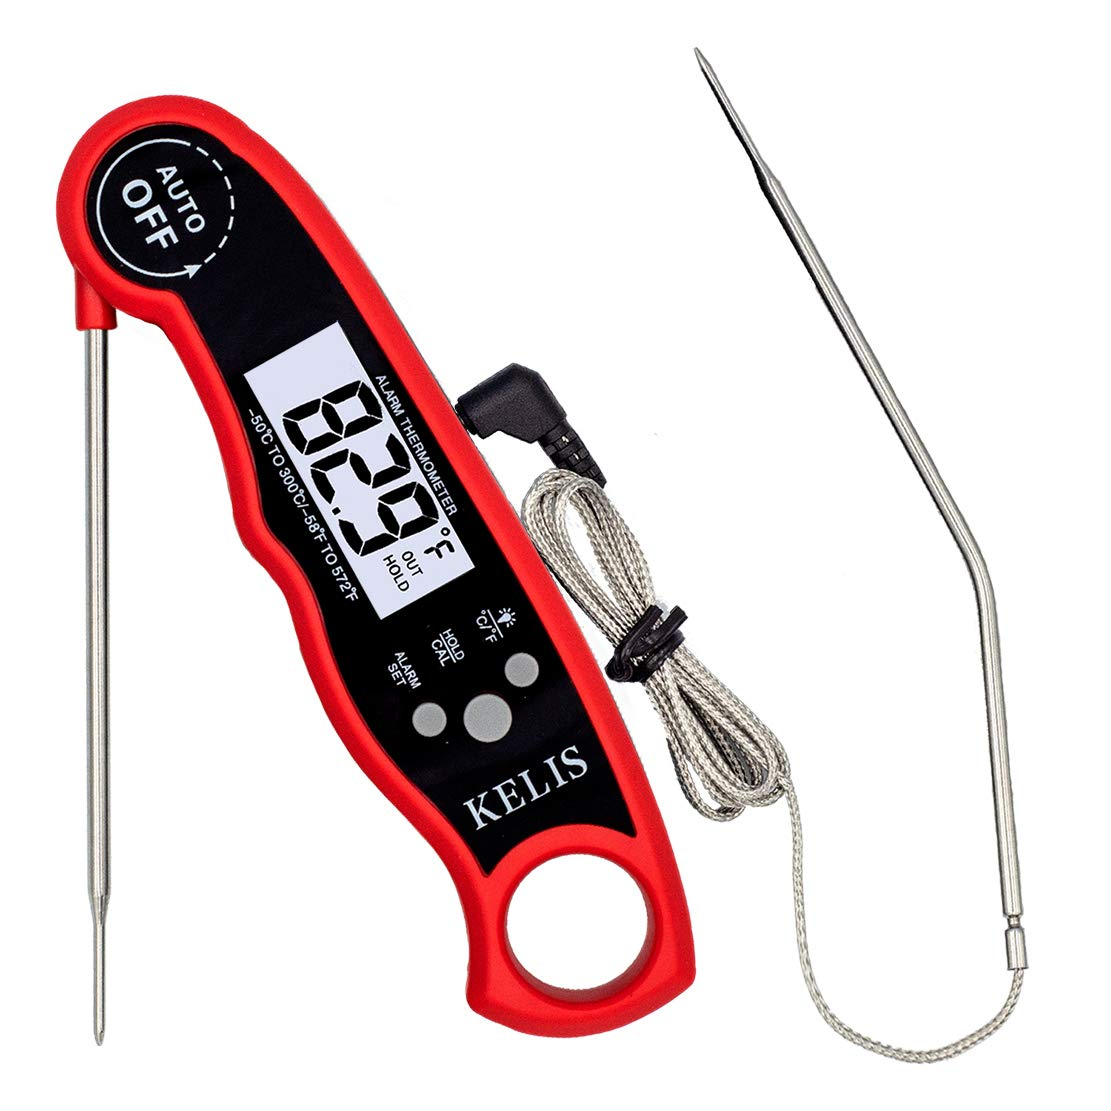 KELIS Digital Instant Read Meat Thermometer for Cooking, Food, Kitchen, Grill, BBQ, Smoker, Candy, Home Brewing, Coffee, and Oil Deep Frying, with Alarm Setting, Magnet, Dual Probe Long Wire